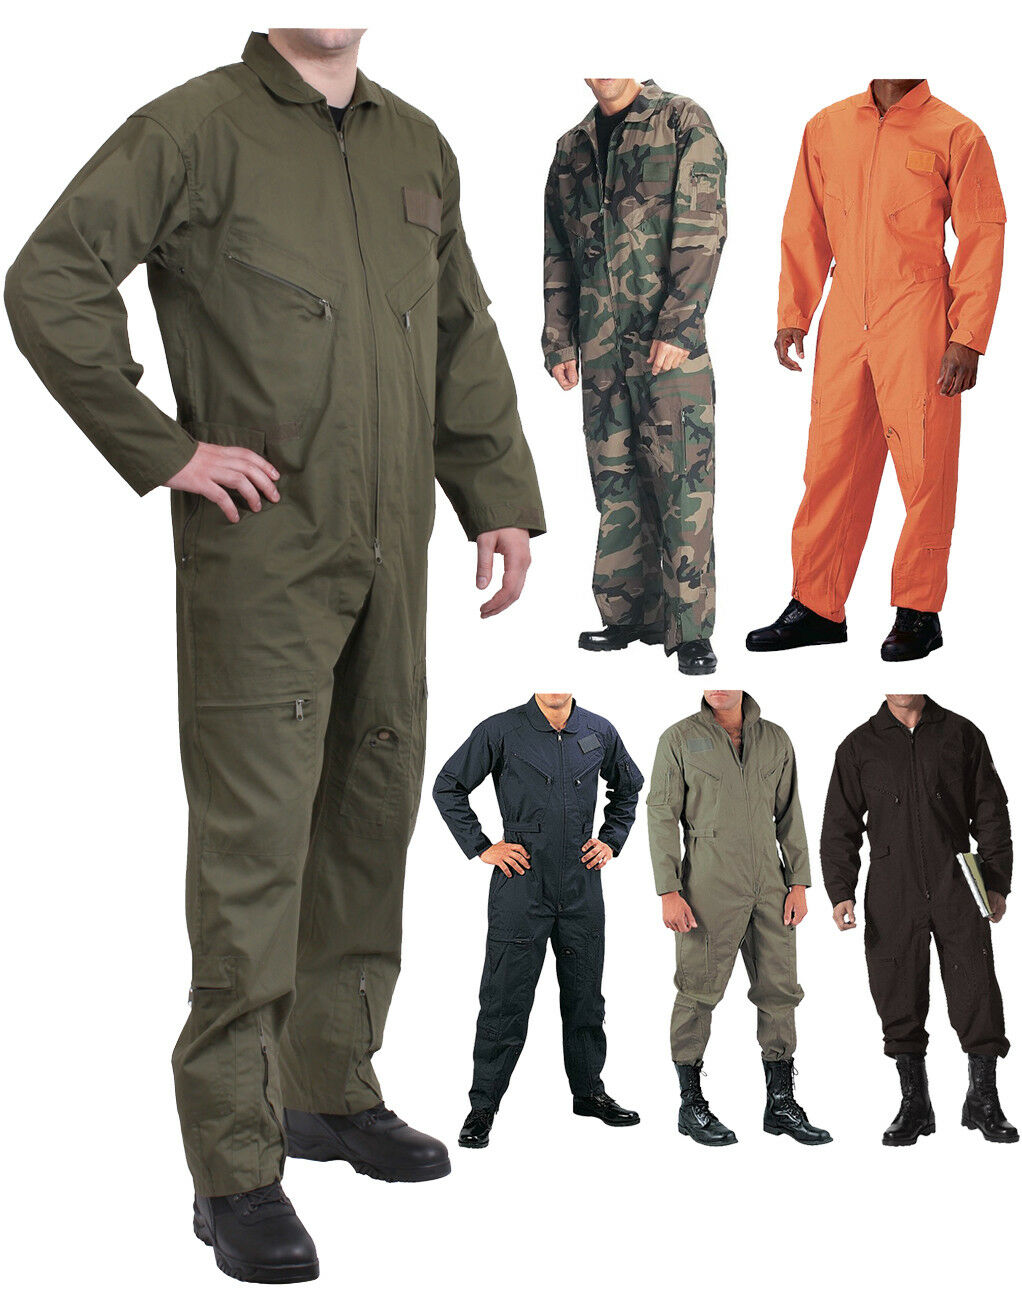 Military Flight Suit, Air Force Fighter Coveralls, Army Camo Jumpsuit Overalls